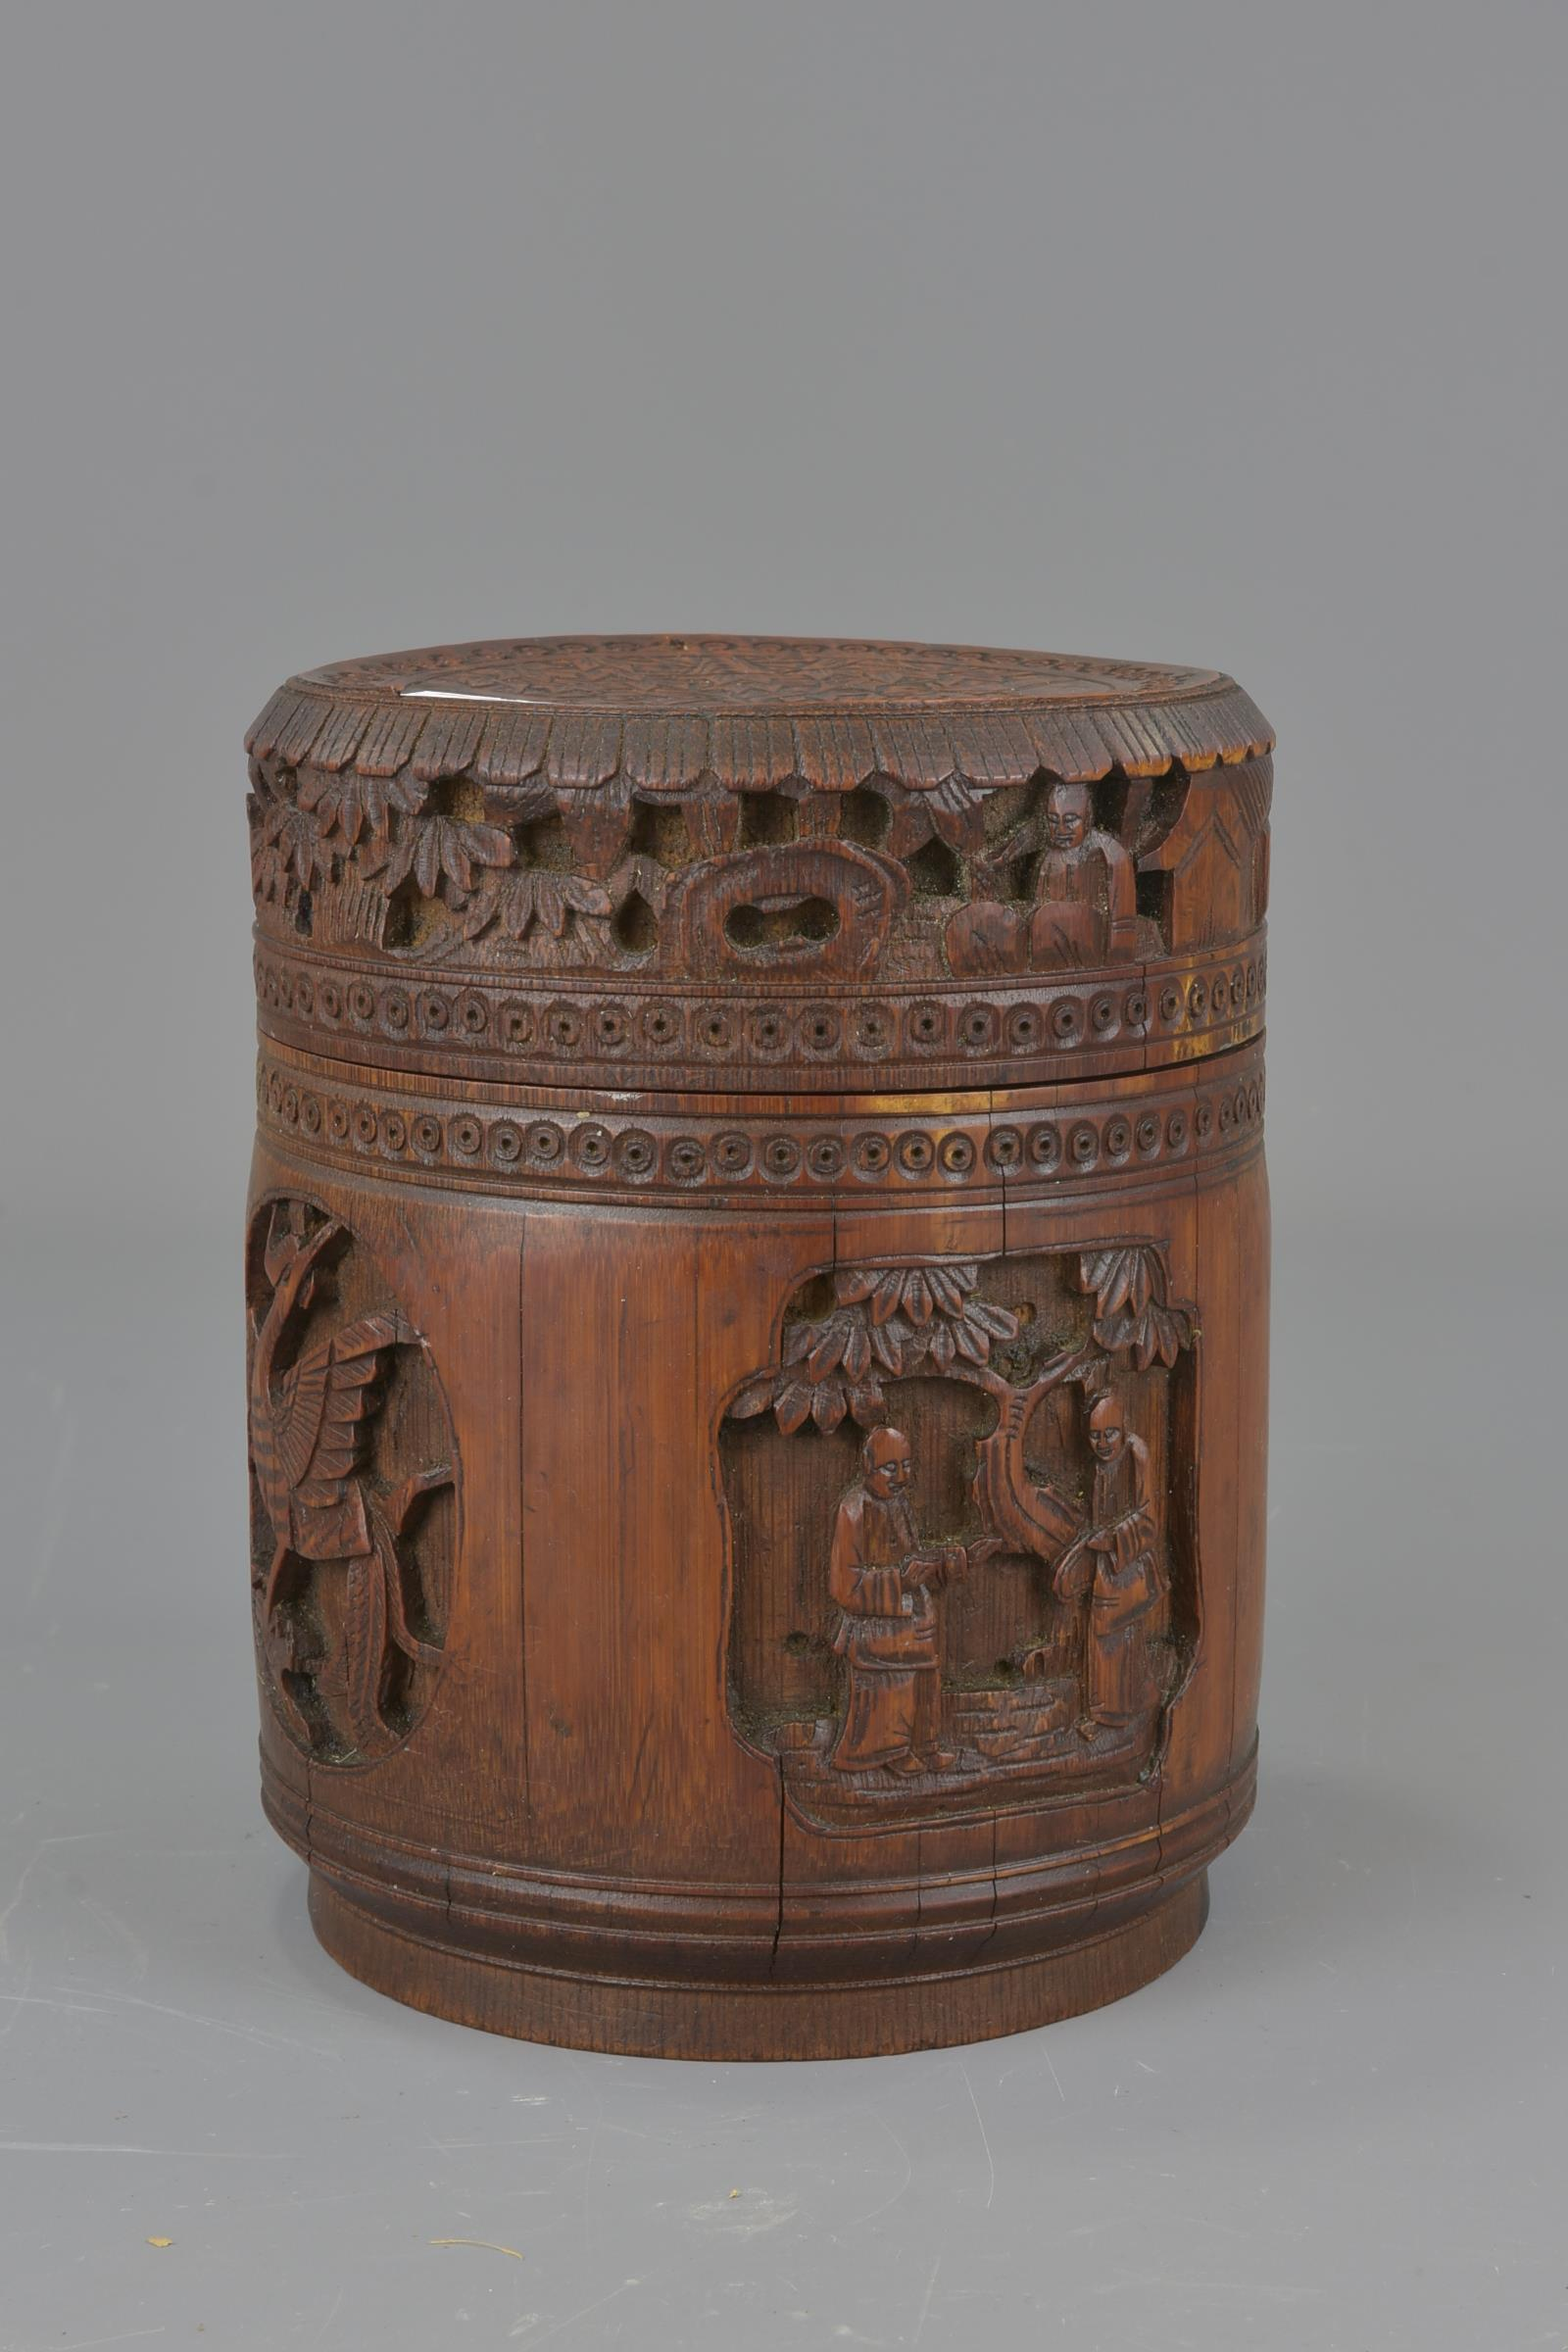 Lot 60 - A Chinese early 20th century bamboo tea caddy. 13cm x 16cm